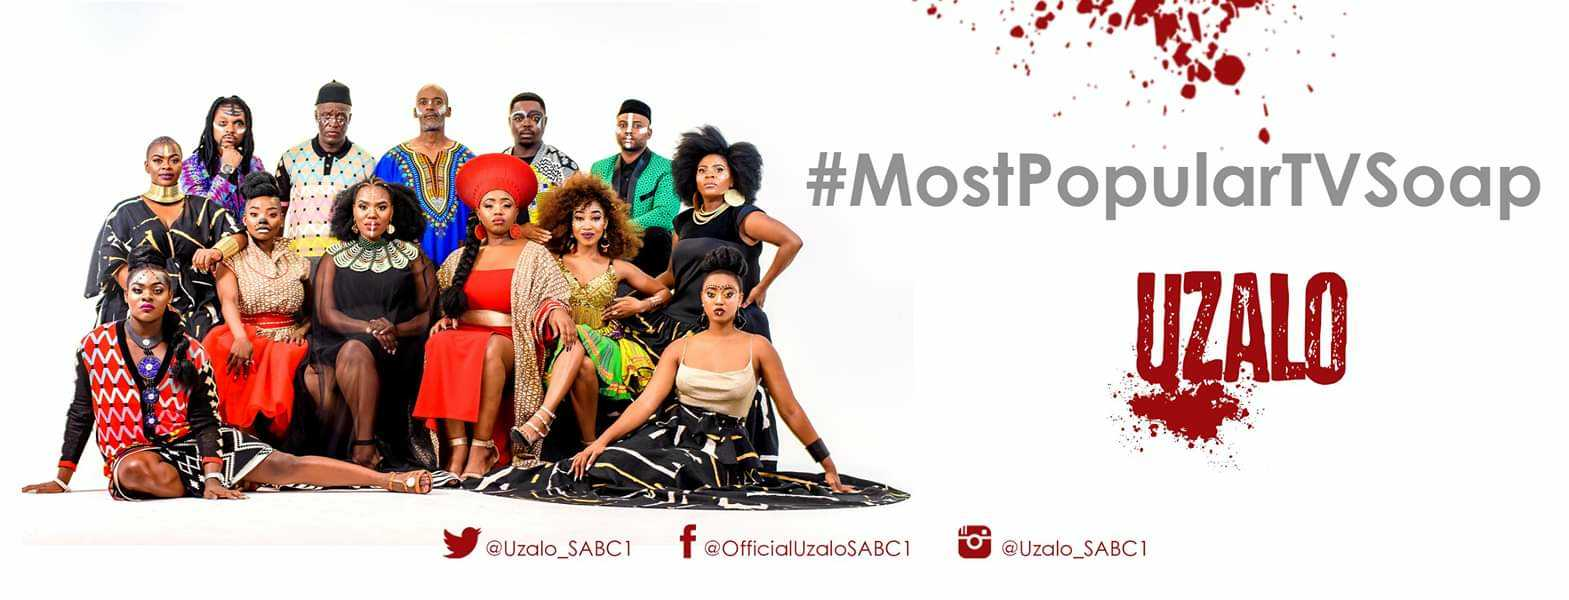 Uzalo Hit By New Fake Auditions Scam - The Daily Vox